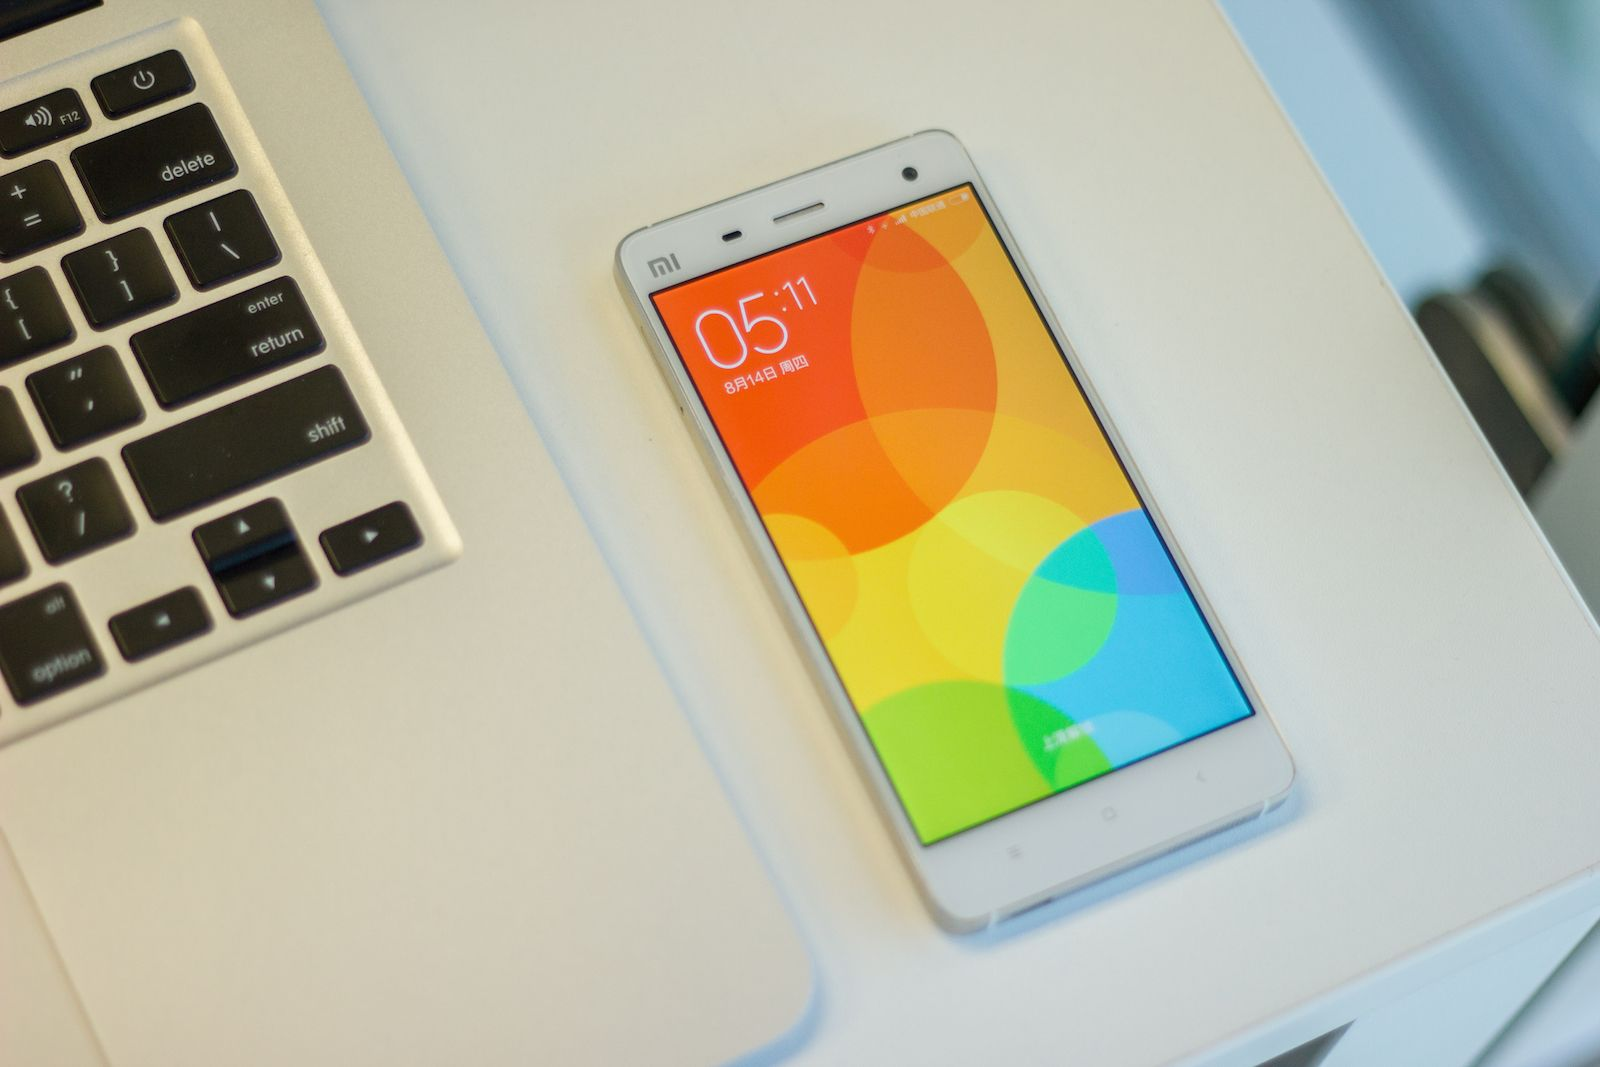 MIUI 6 Full Review Visually Stunning, Stunningly Simple